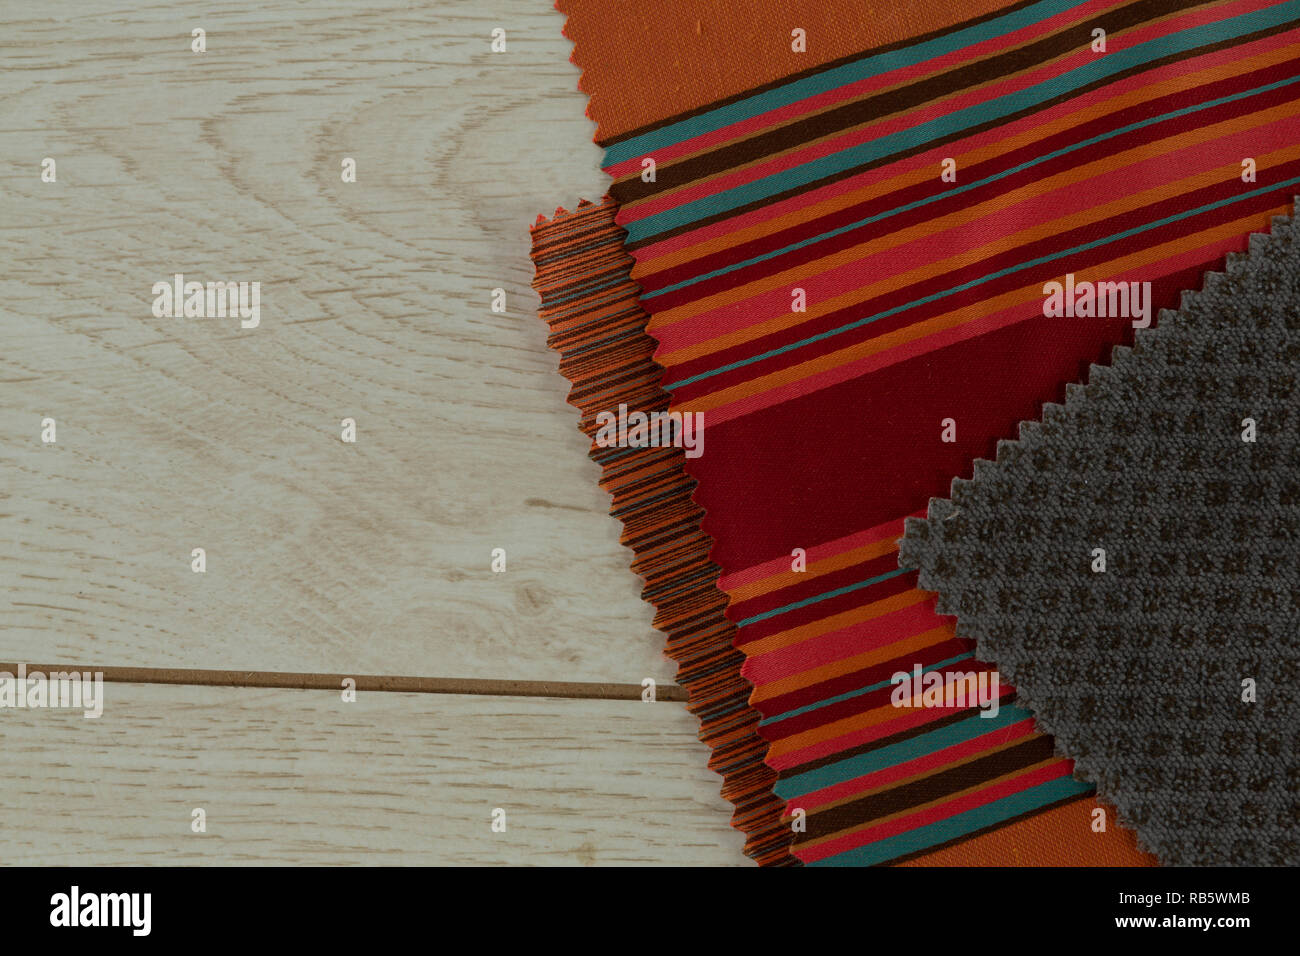 Textile on a wooden table - Stock Image